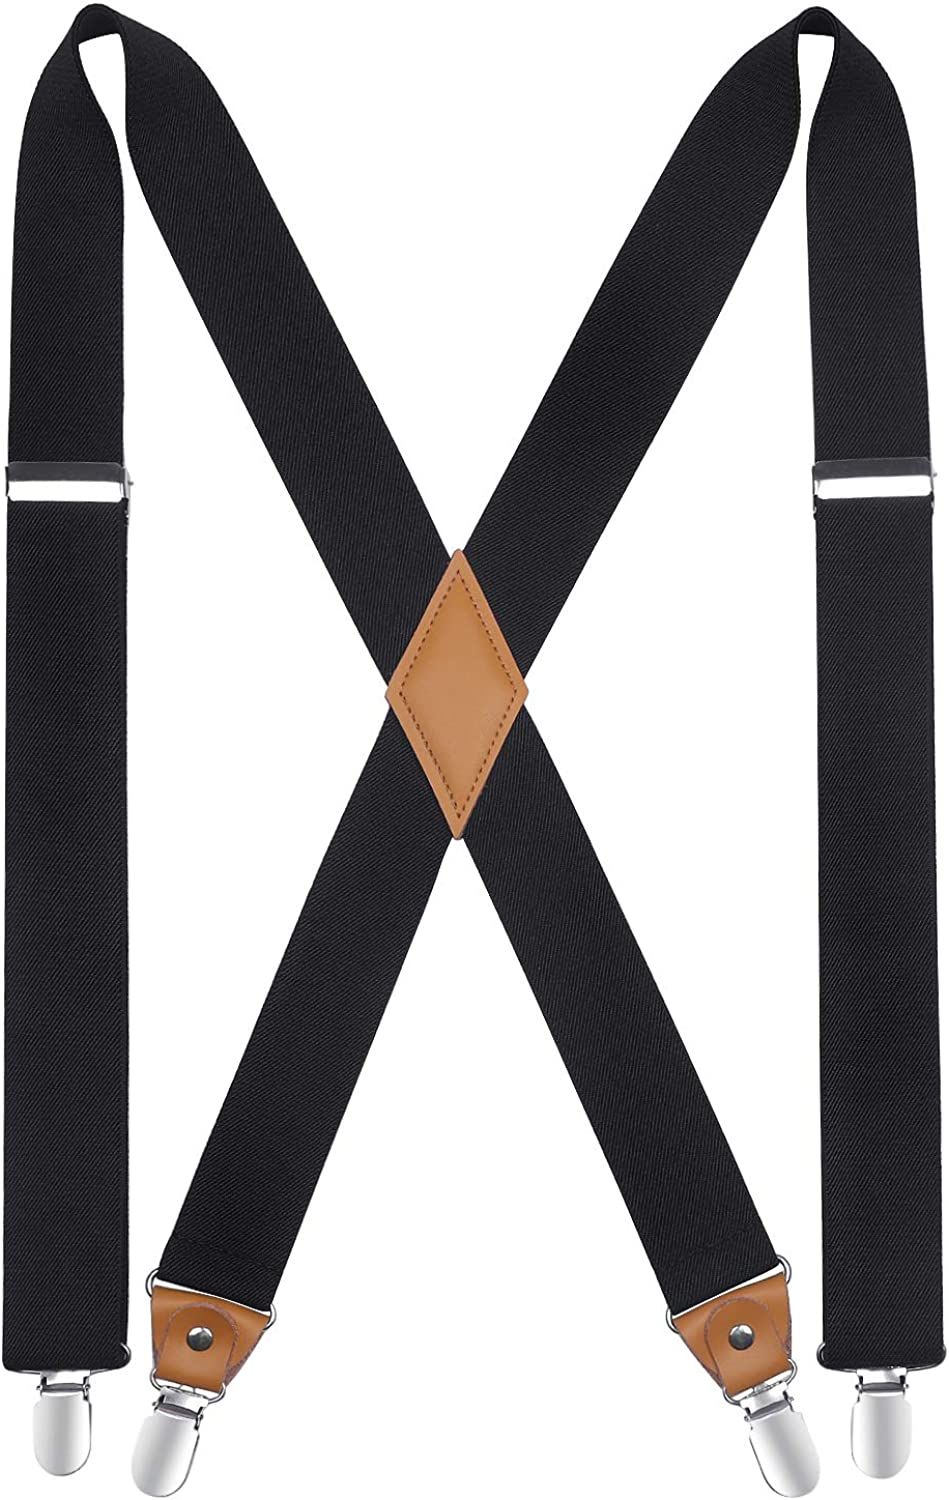 Mens Suspenders Strong Clips Heavy Duty X- Back 1.4 Inch Adjustable Suspenders Elastic Braces for Work Wedding Party